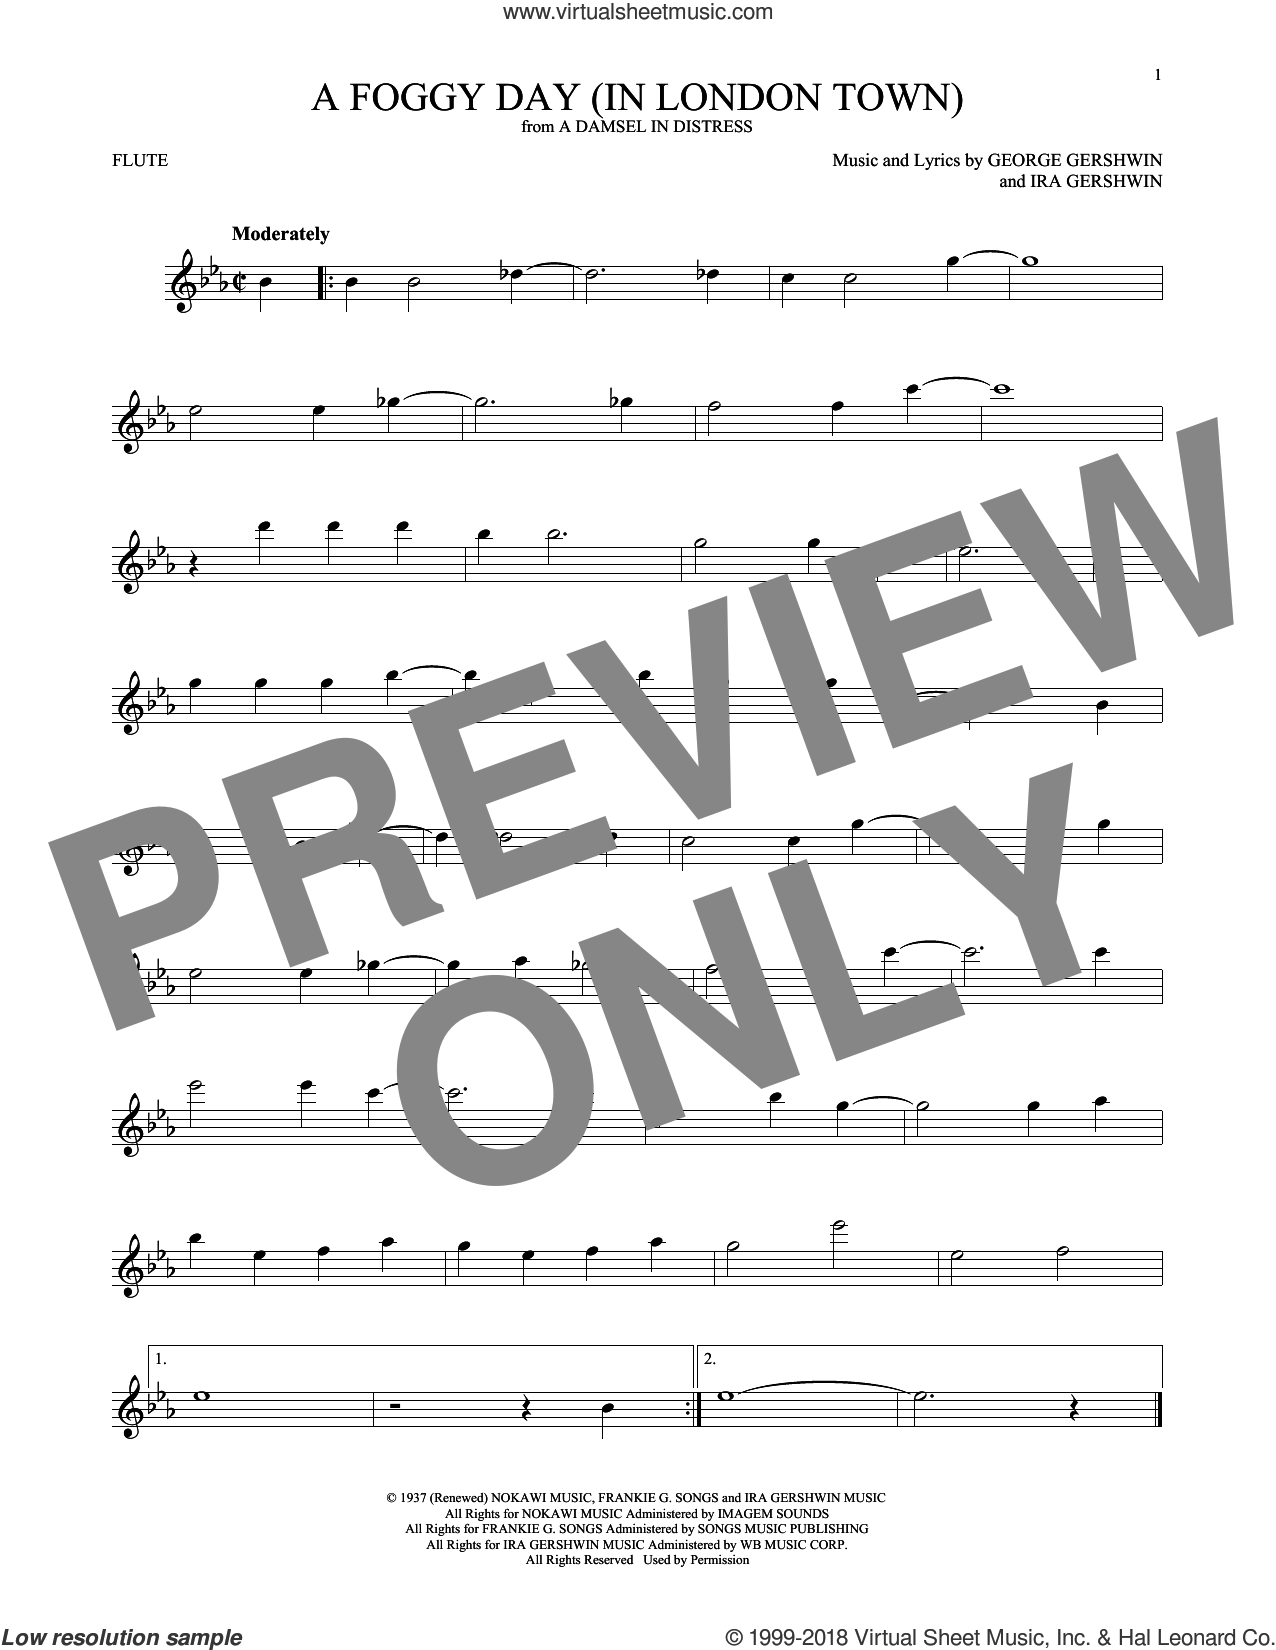 A Foggy Day (In London Town) sheet music for flute solo by George Gershwin and Ira Gershwin, intermediate skill level